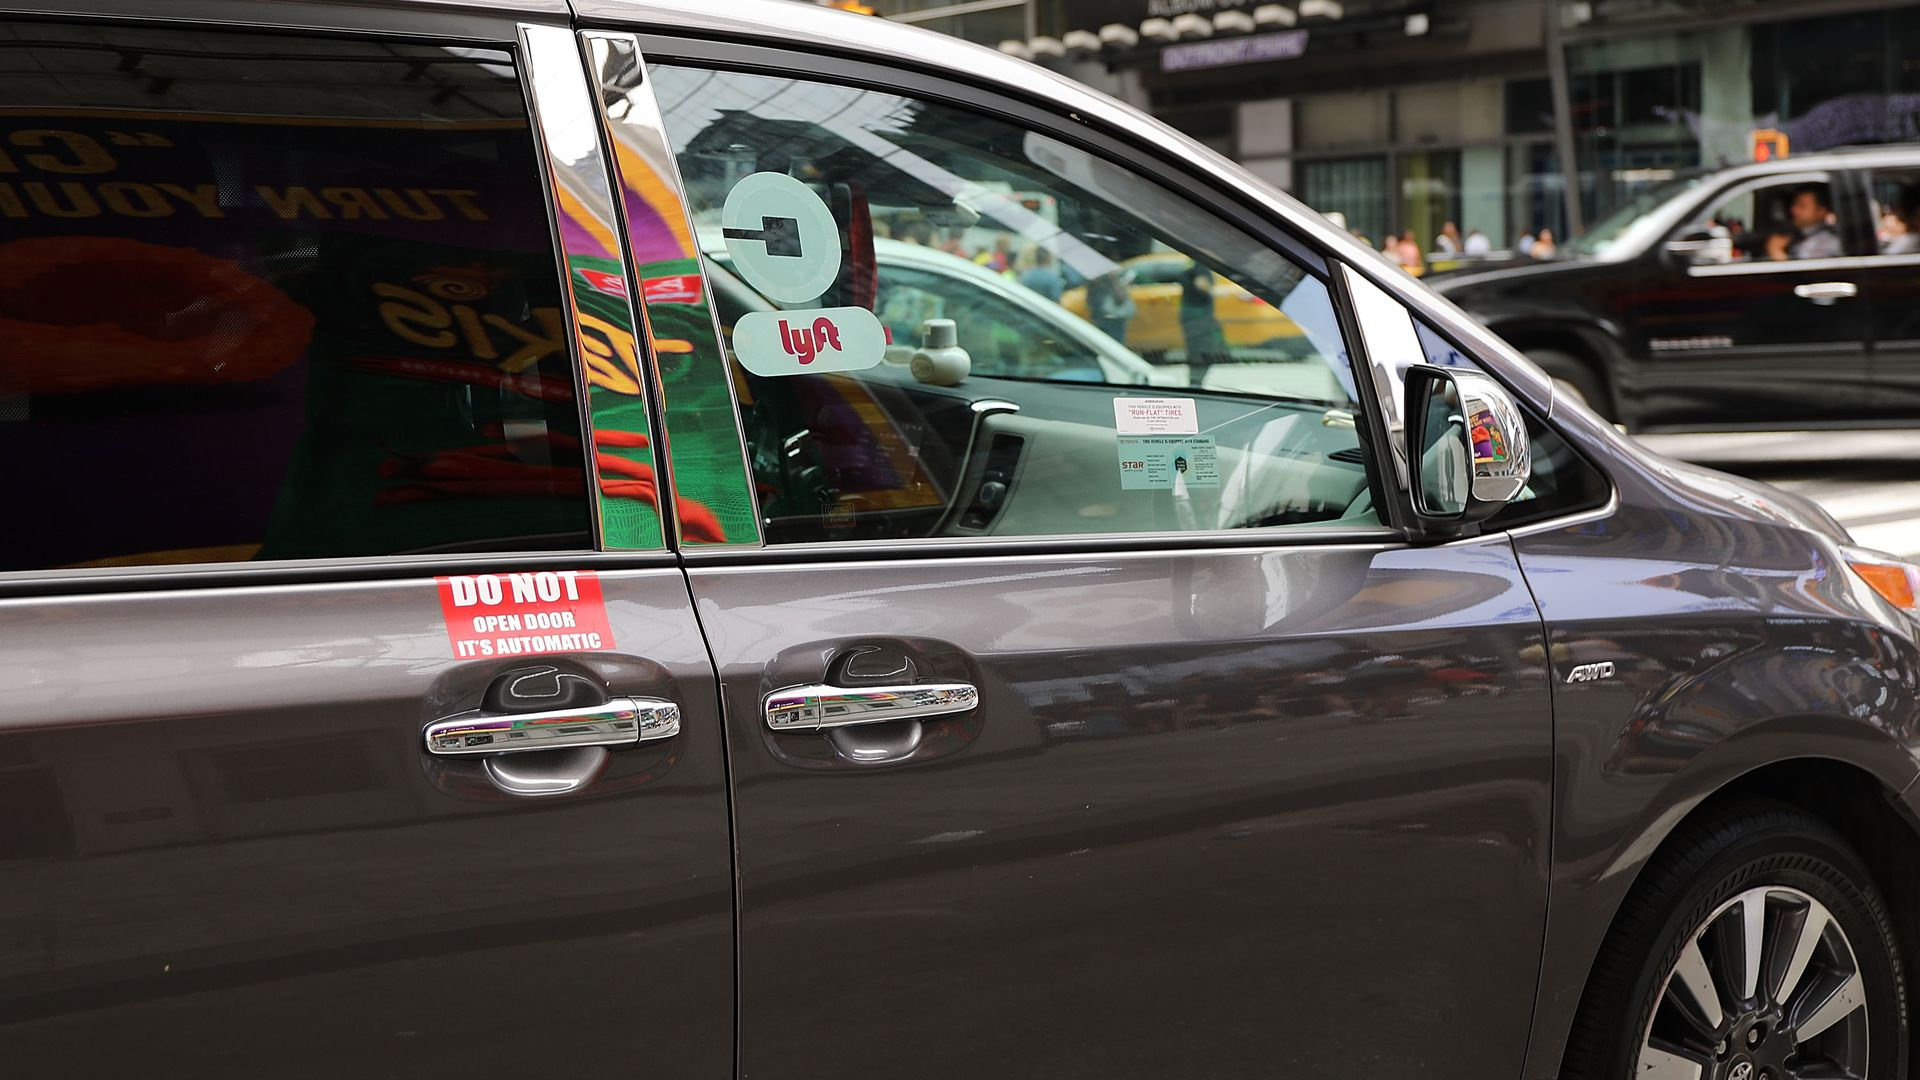 A van with Lyft and Uber window stickers moves through traffic in Manhattan